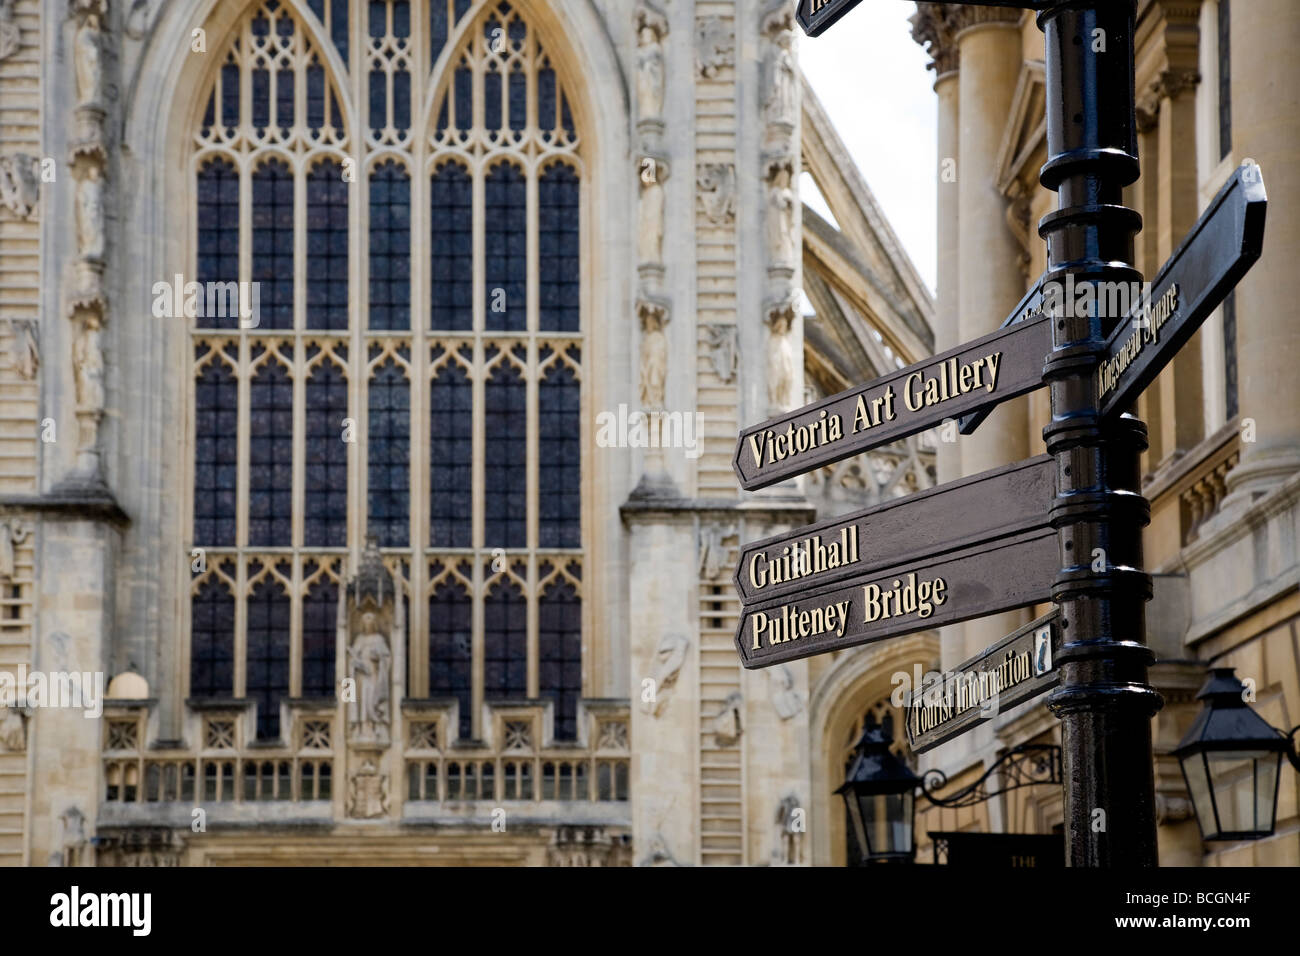 A VIEW OF THE ABBEY CHURCHYARD AREA WITH SIGNPOST GIVING DIRECTIONS TO THE POPULAR ATTRACTIONS - Stock Image